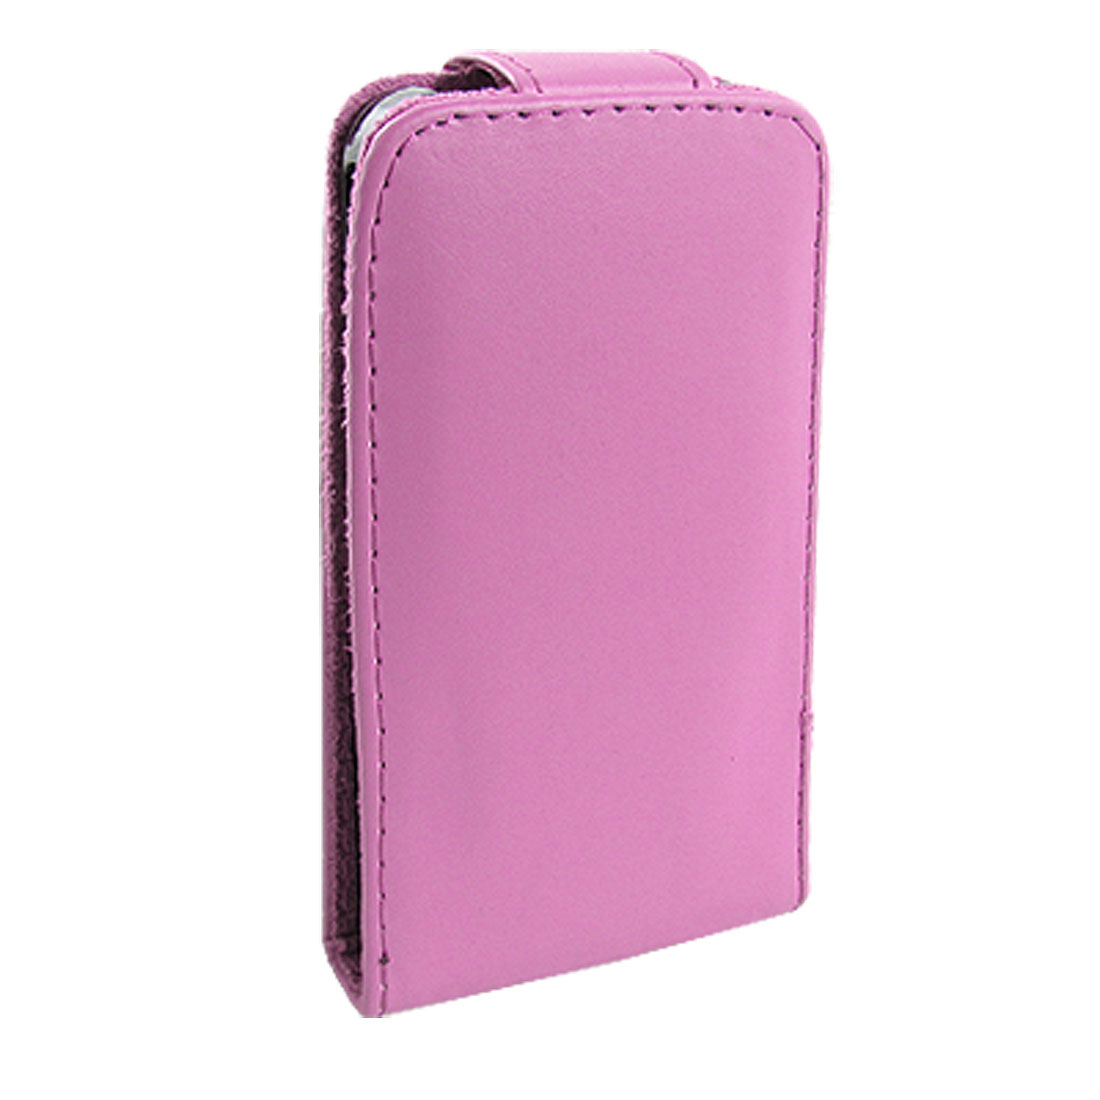 Fuchsia Faux Leather Vertical Flop Pouch for iPhone 4